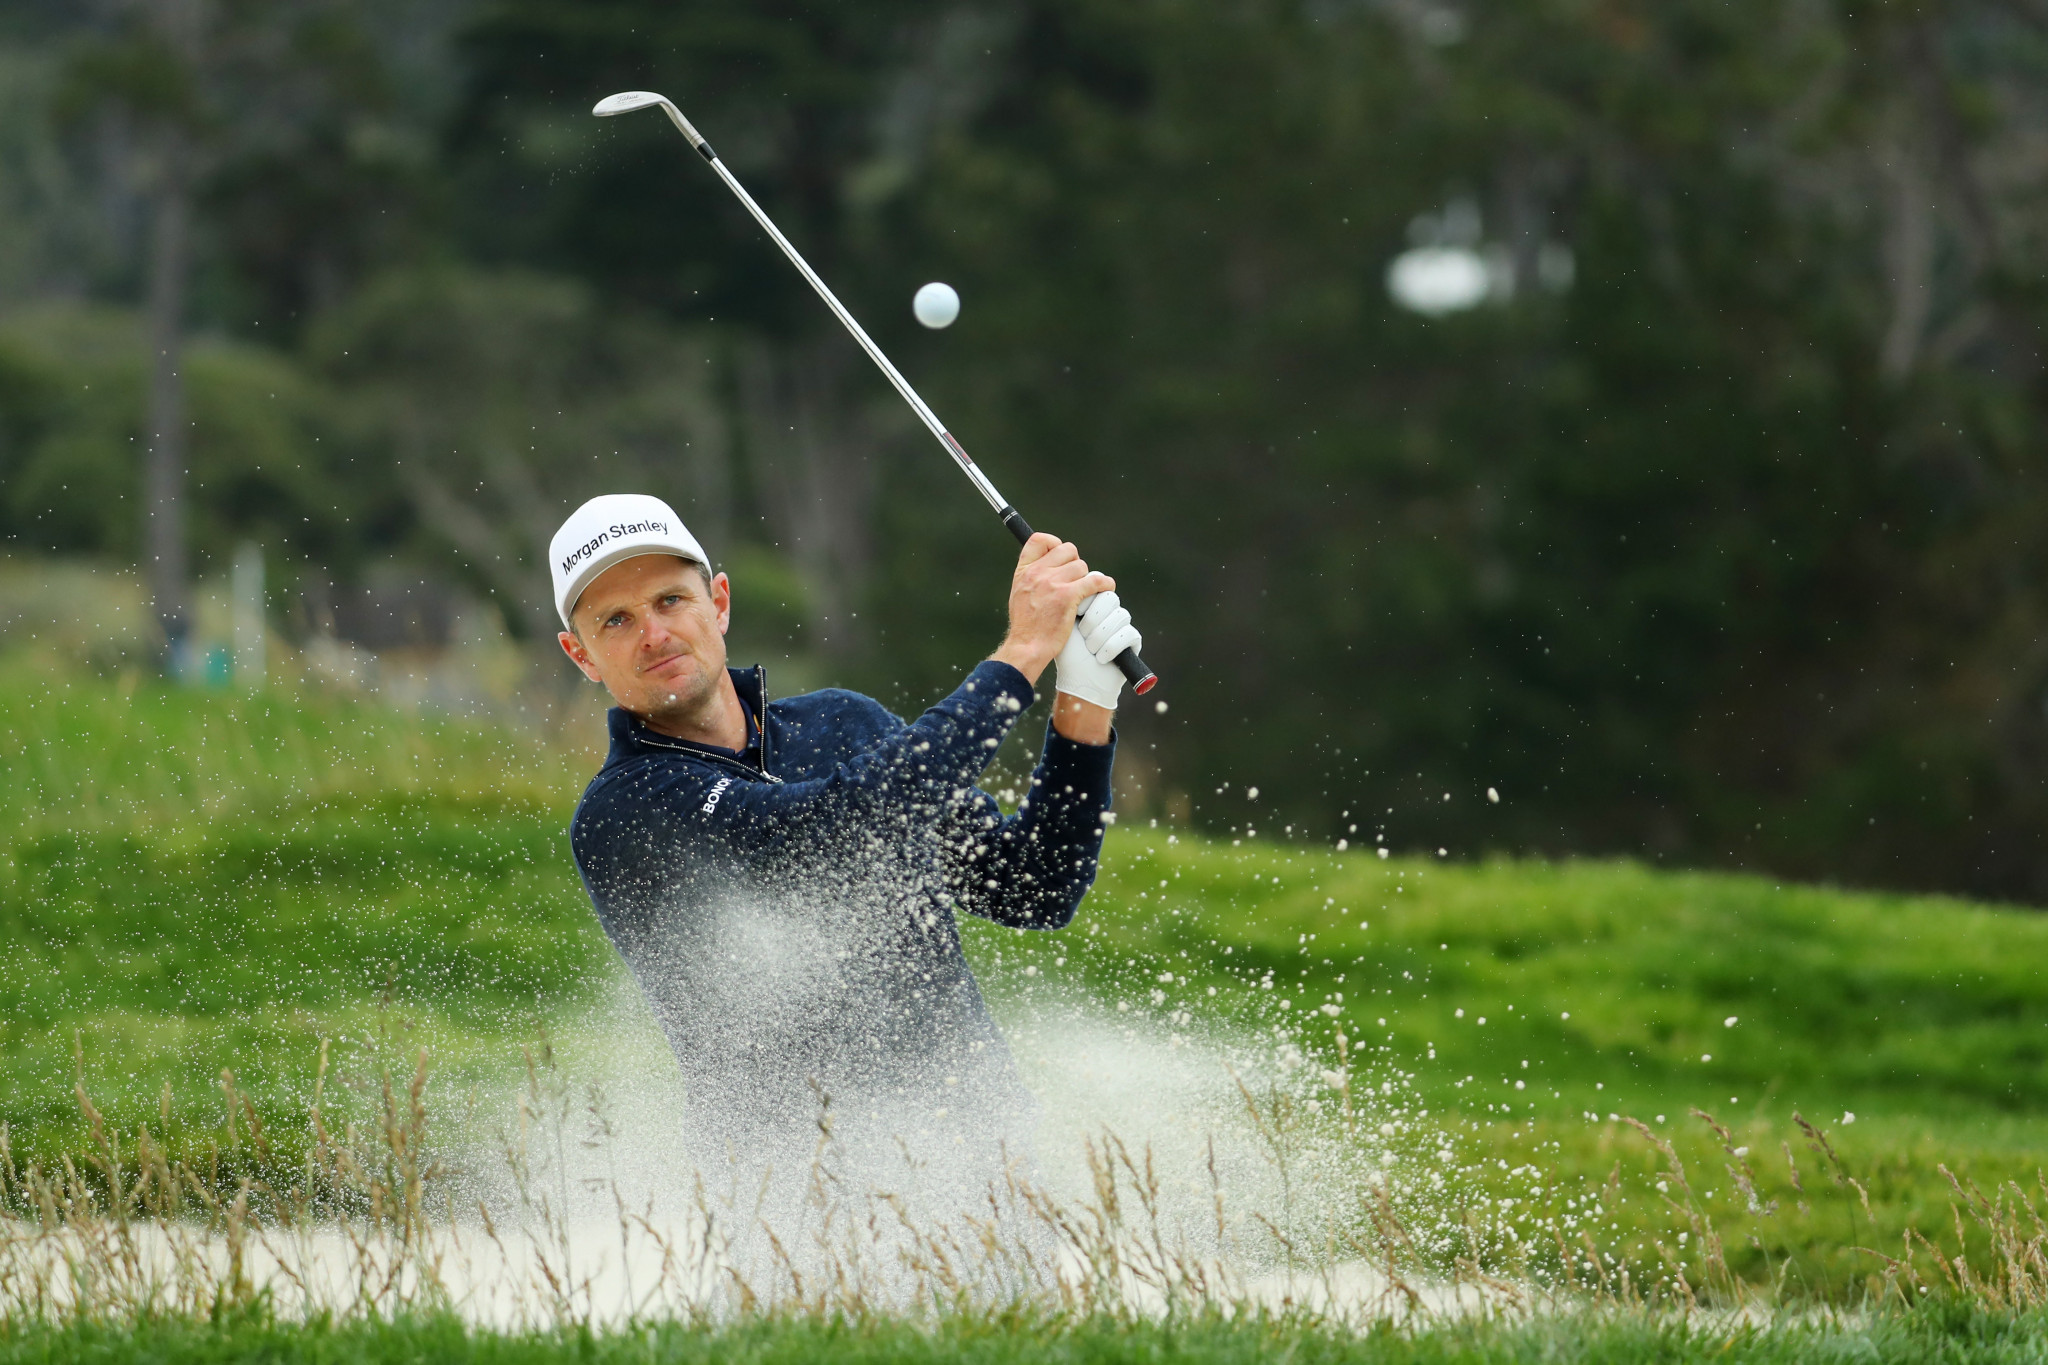 US Open cancels qualifying events for golf major due to COVID-19 pandemic